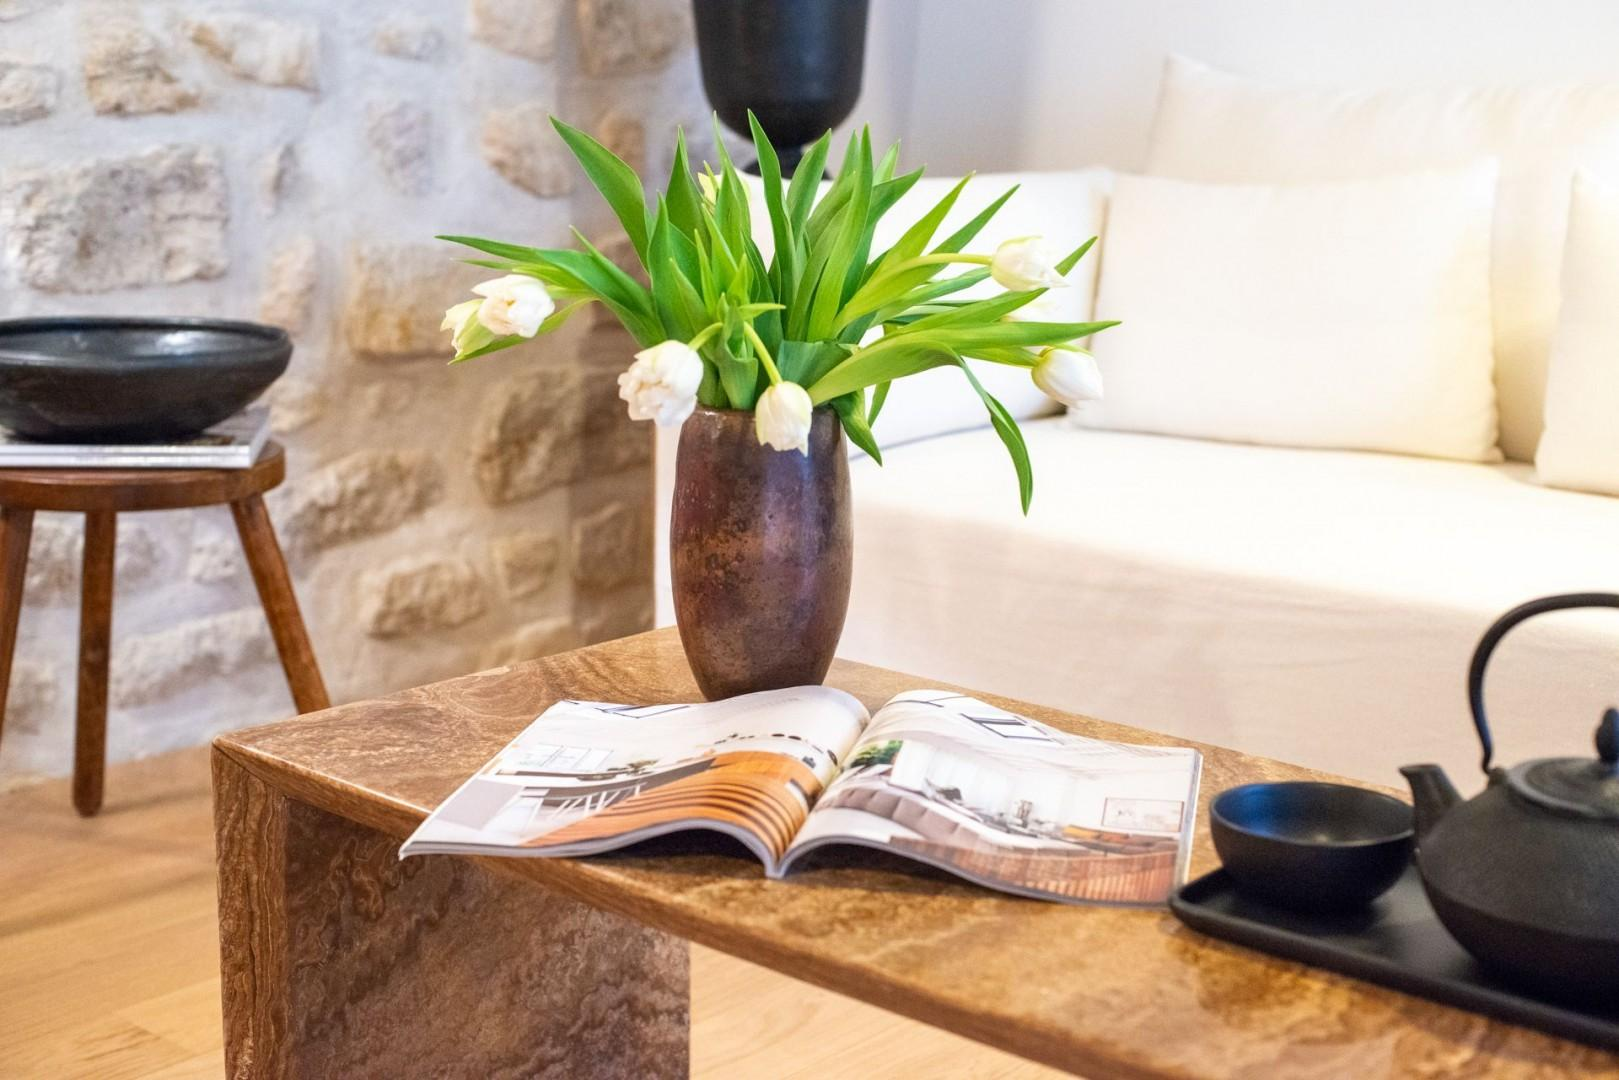 Relax on the comfy couch with a magazine and cup of tea.